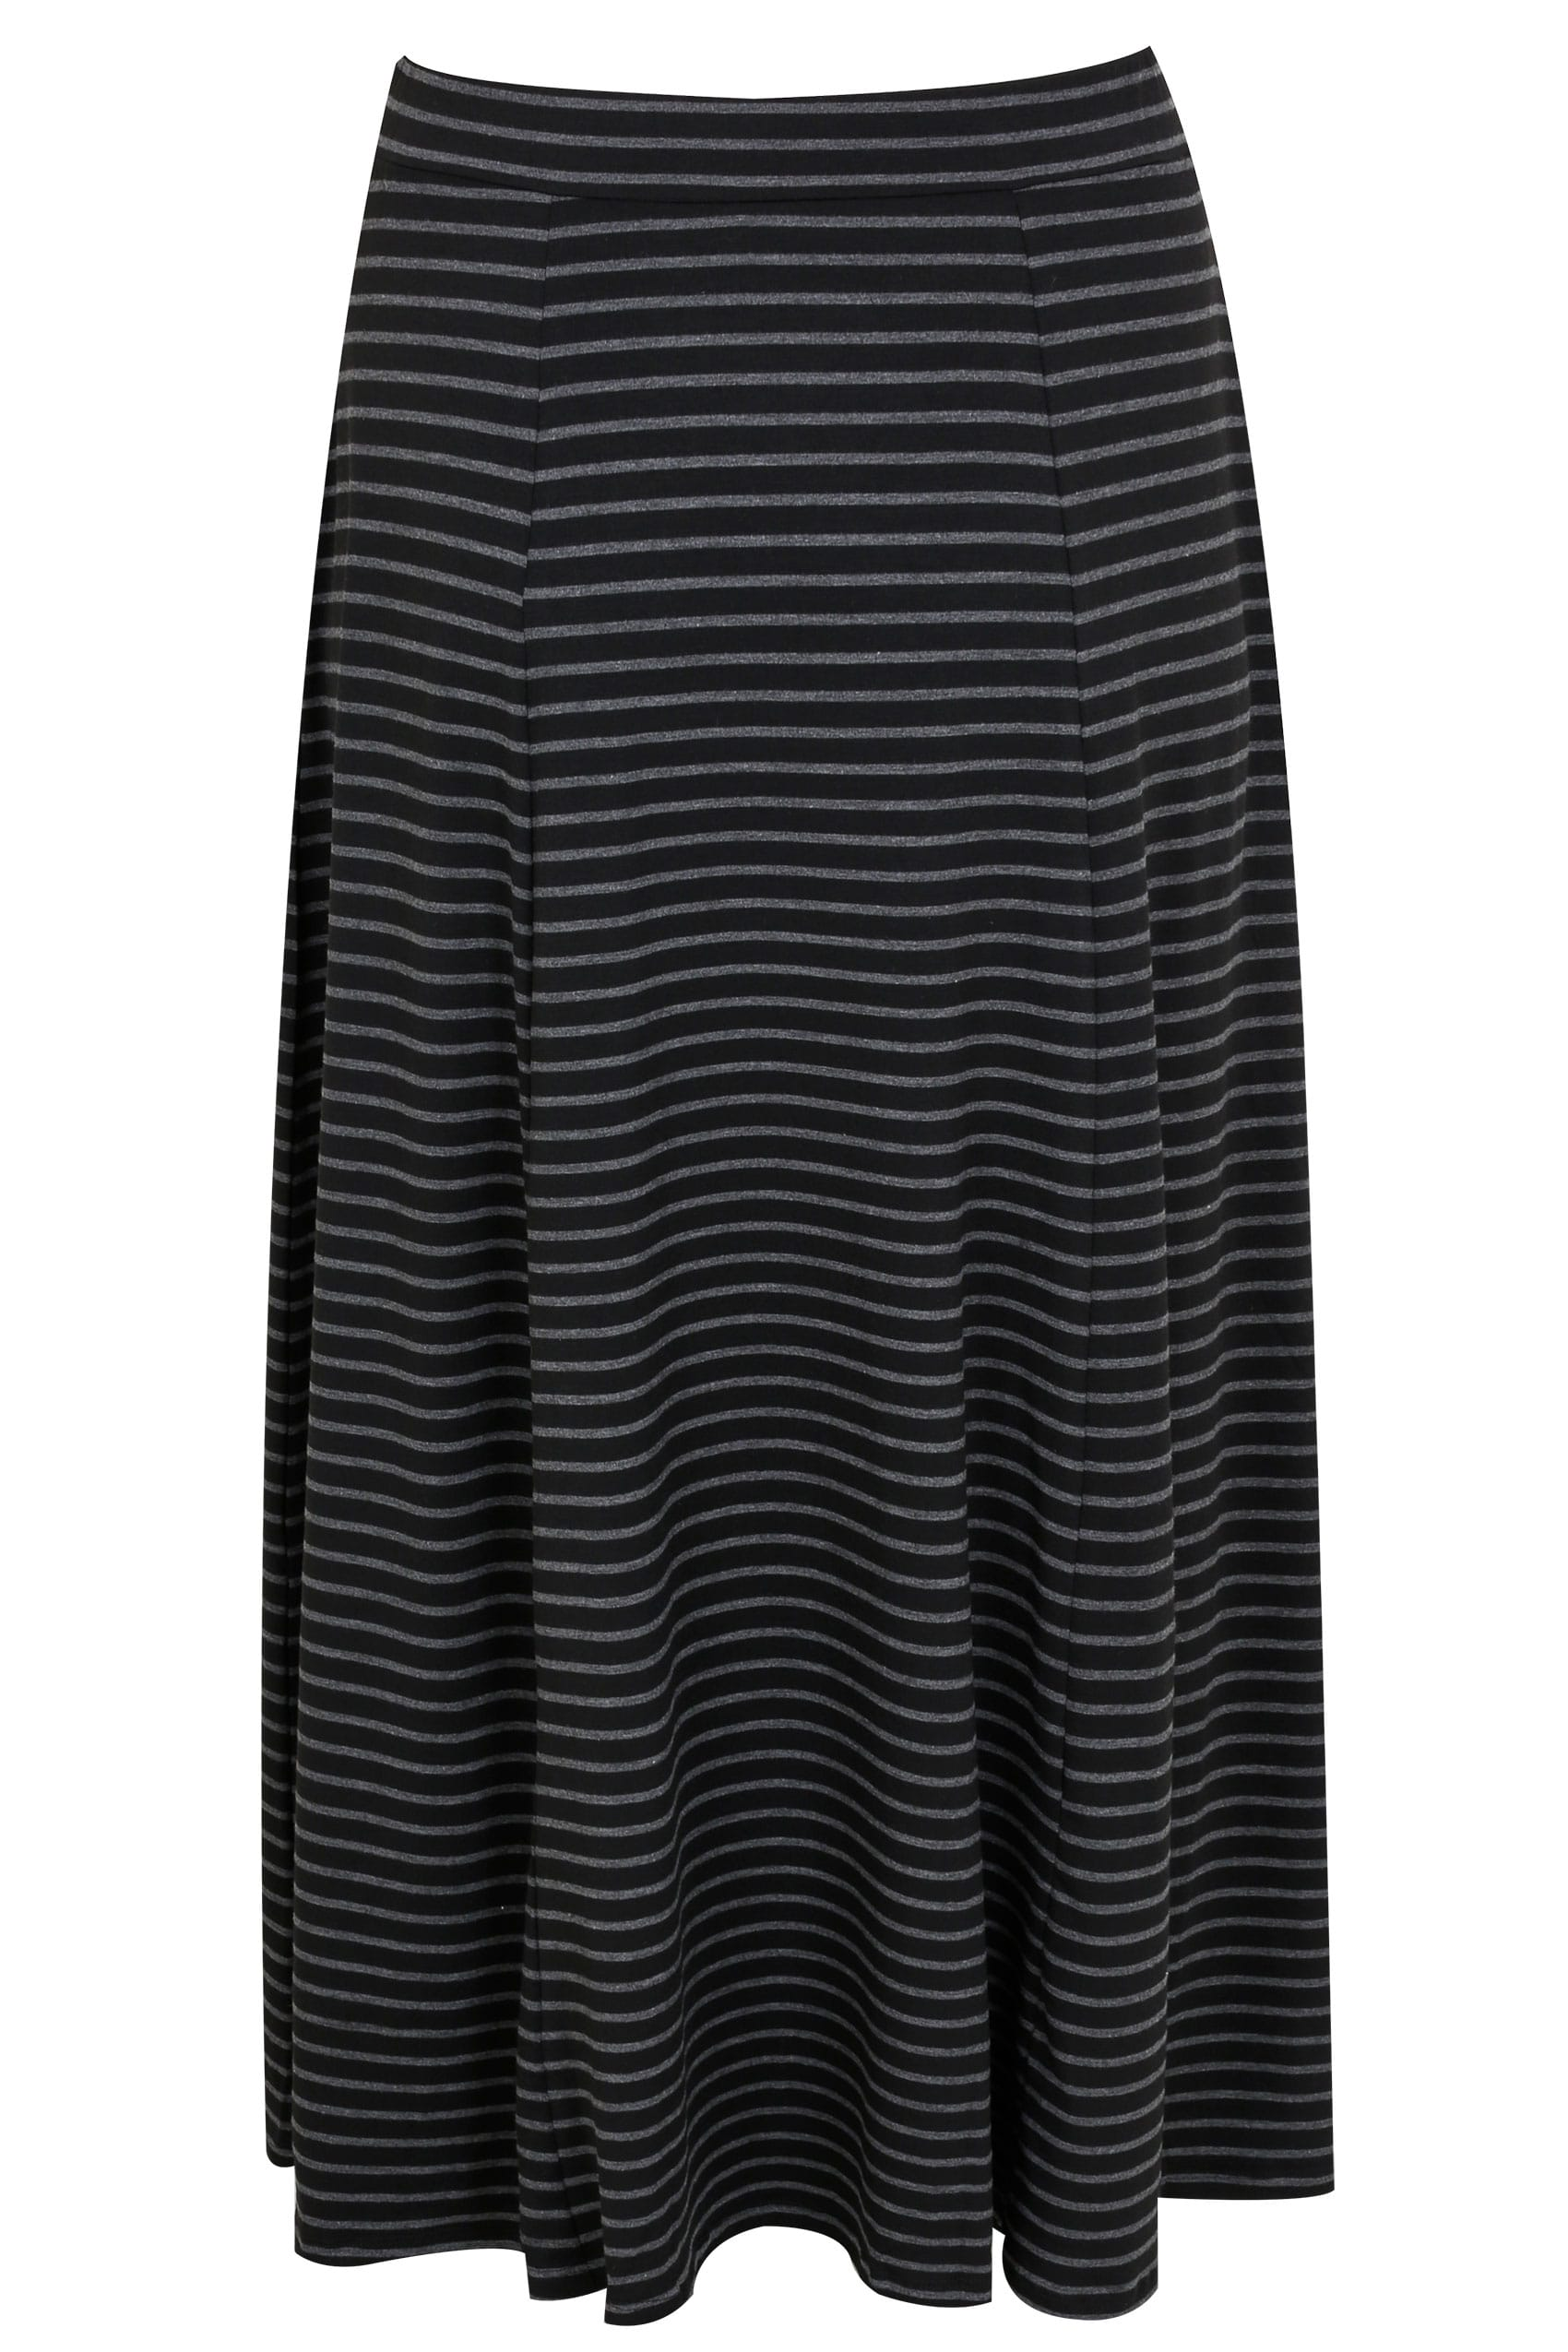 88df063d42 Black & Grey Stripe Maxi Skirt With Pockets, Plus size 16 to 36